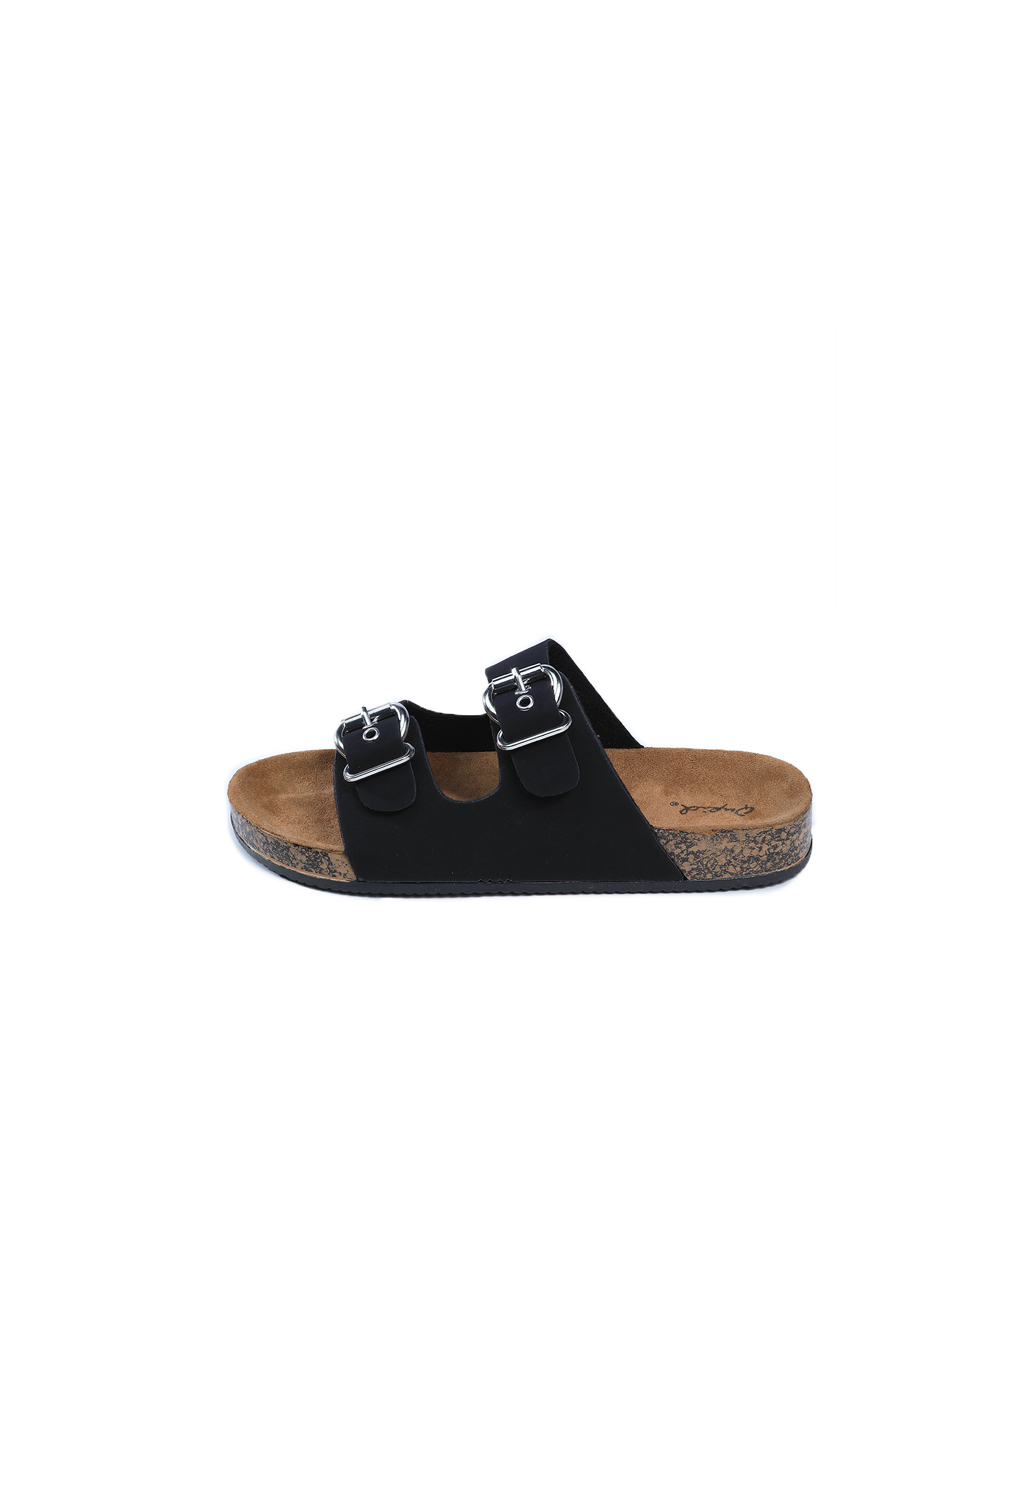 Faux Leather Buckle-Strap Slides